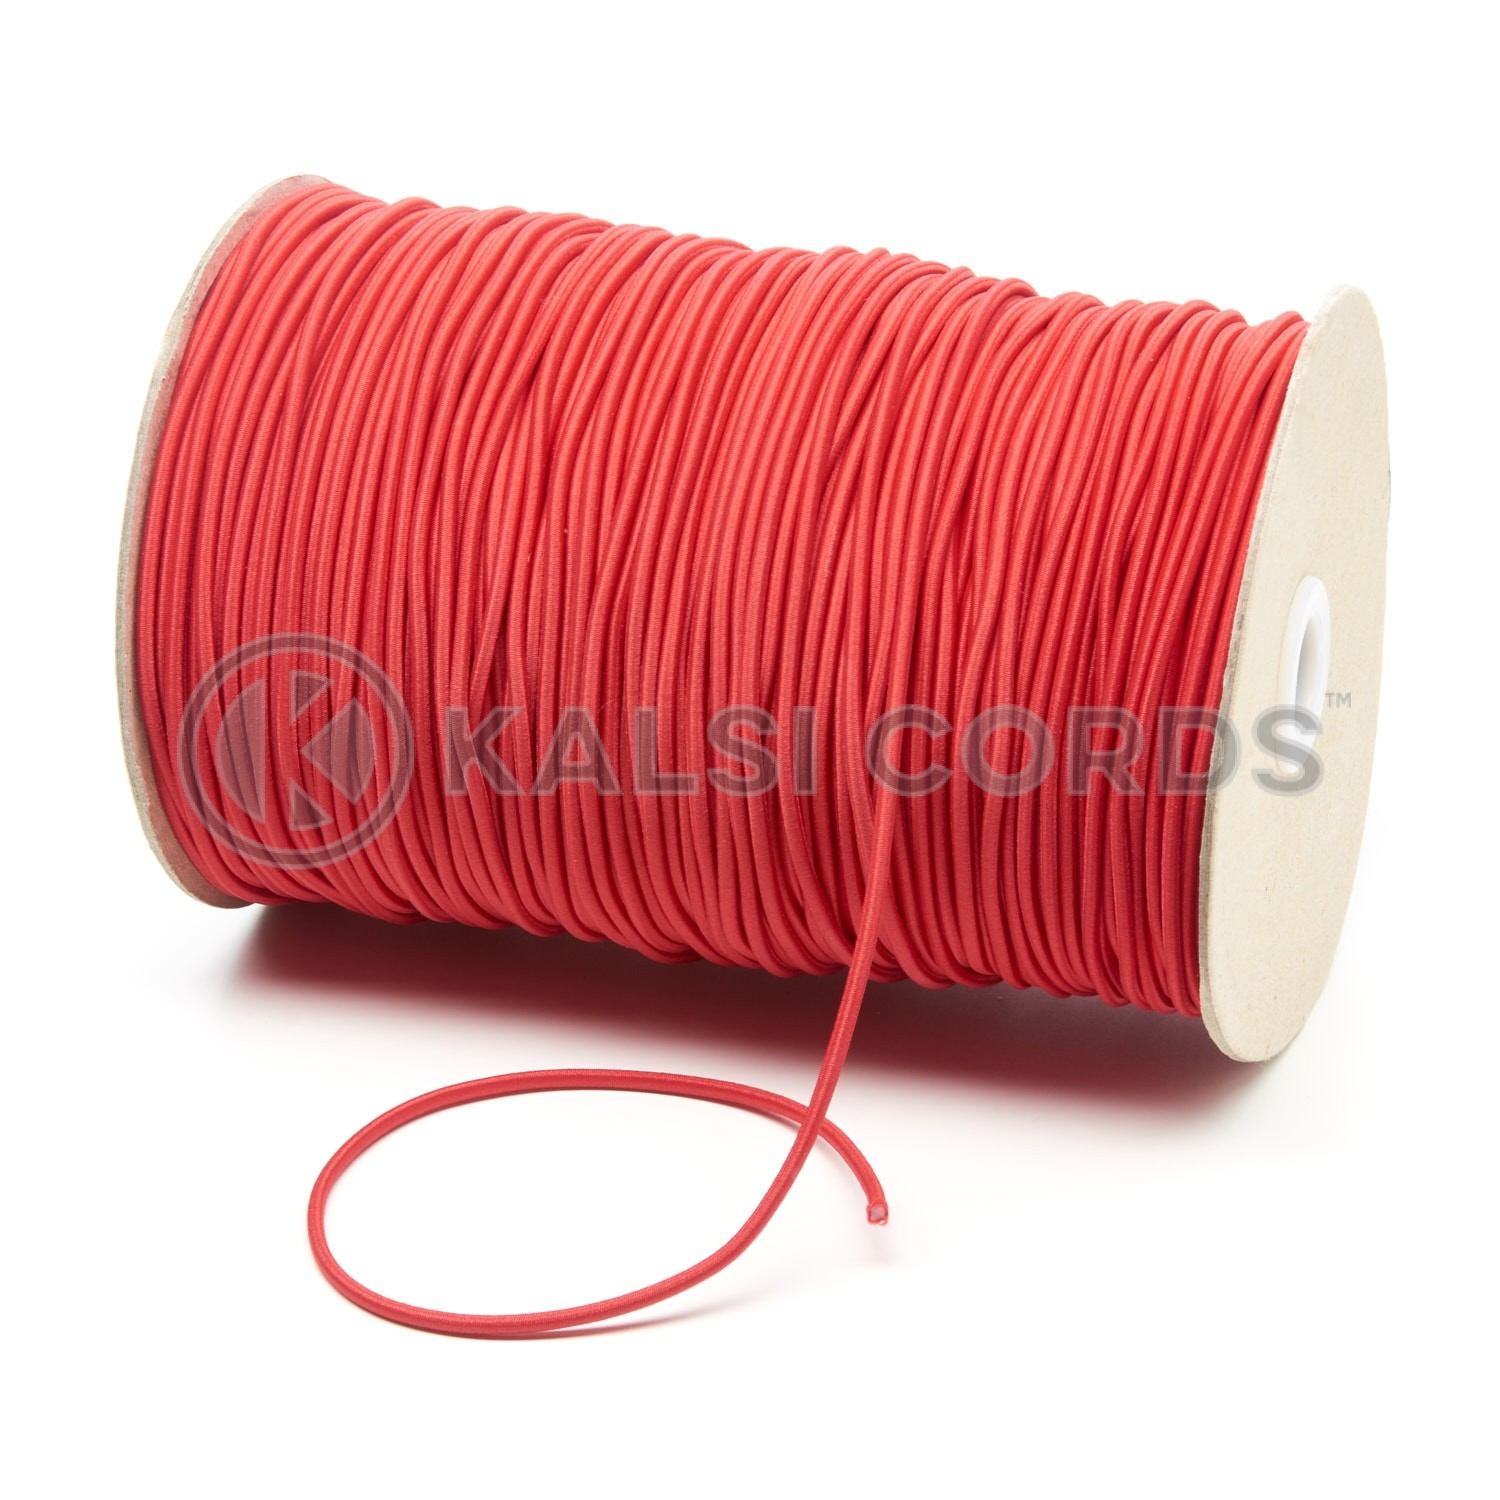 2mm Red Thin Fine Round Elastic Cord Kalsi Cords